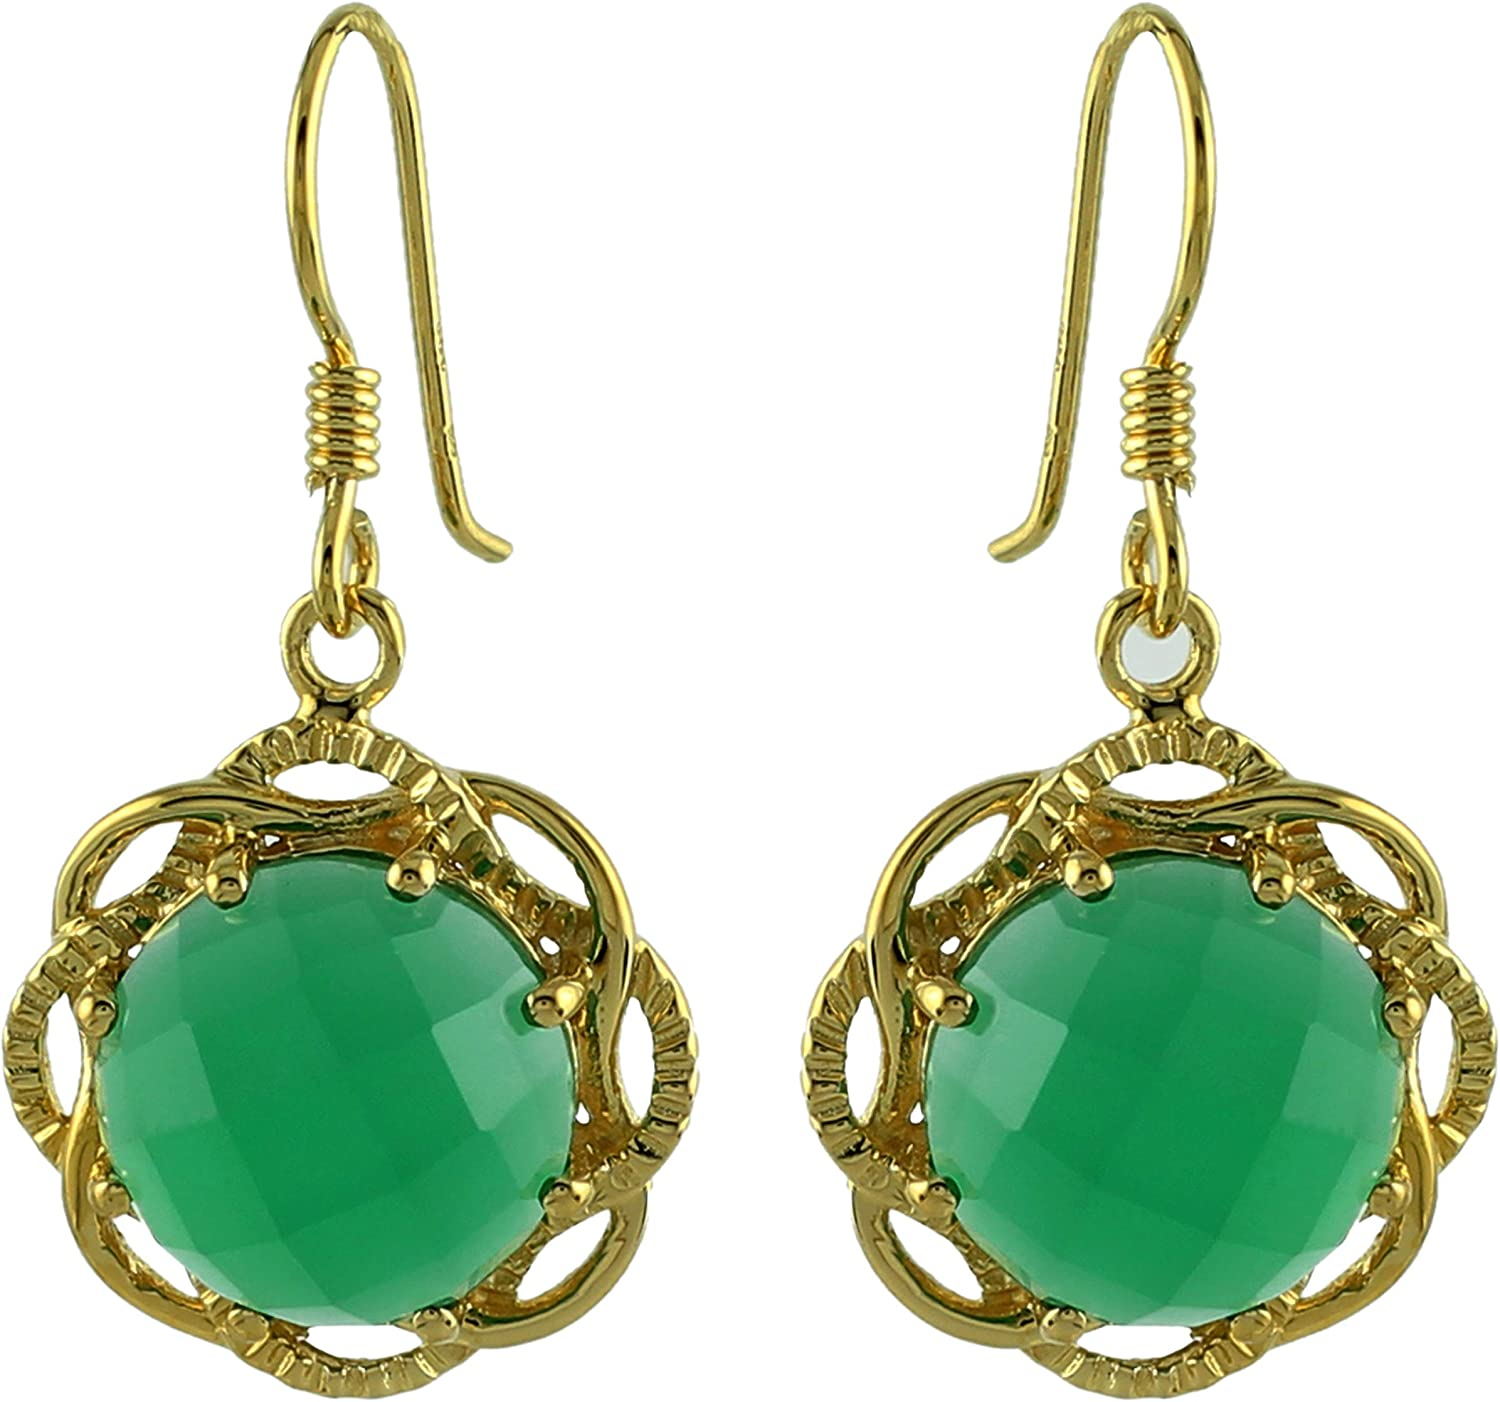 16mmx13mm PC056 Green Onyx Round Pendant 10 Pcs Green Onyx Faceted Round 24k Gold Plated Single Bail Pendant